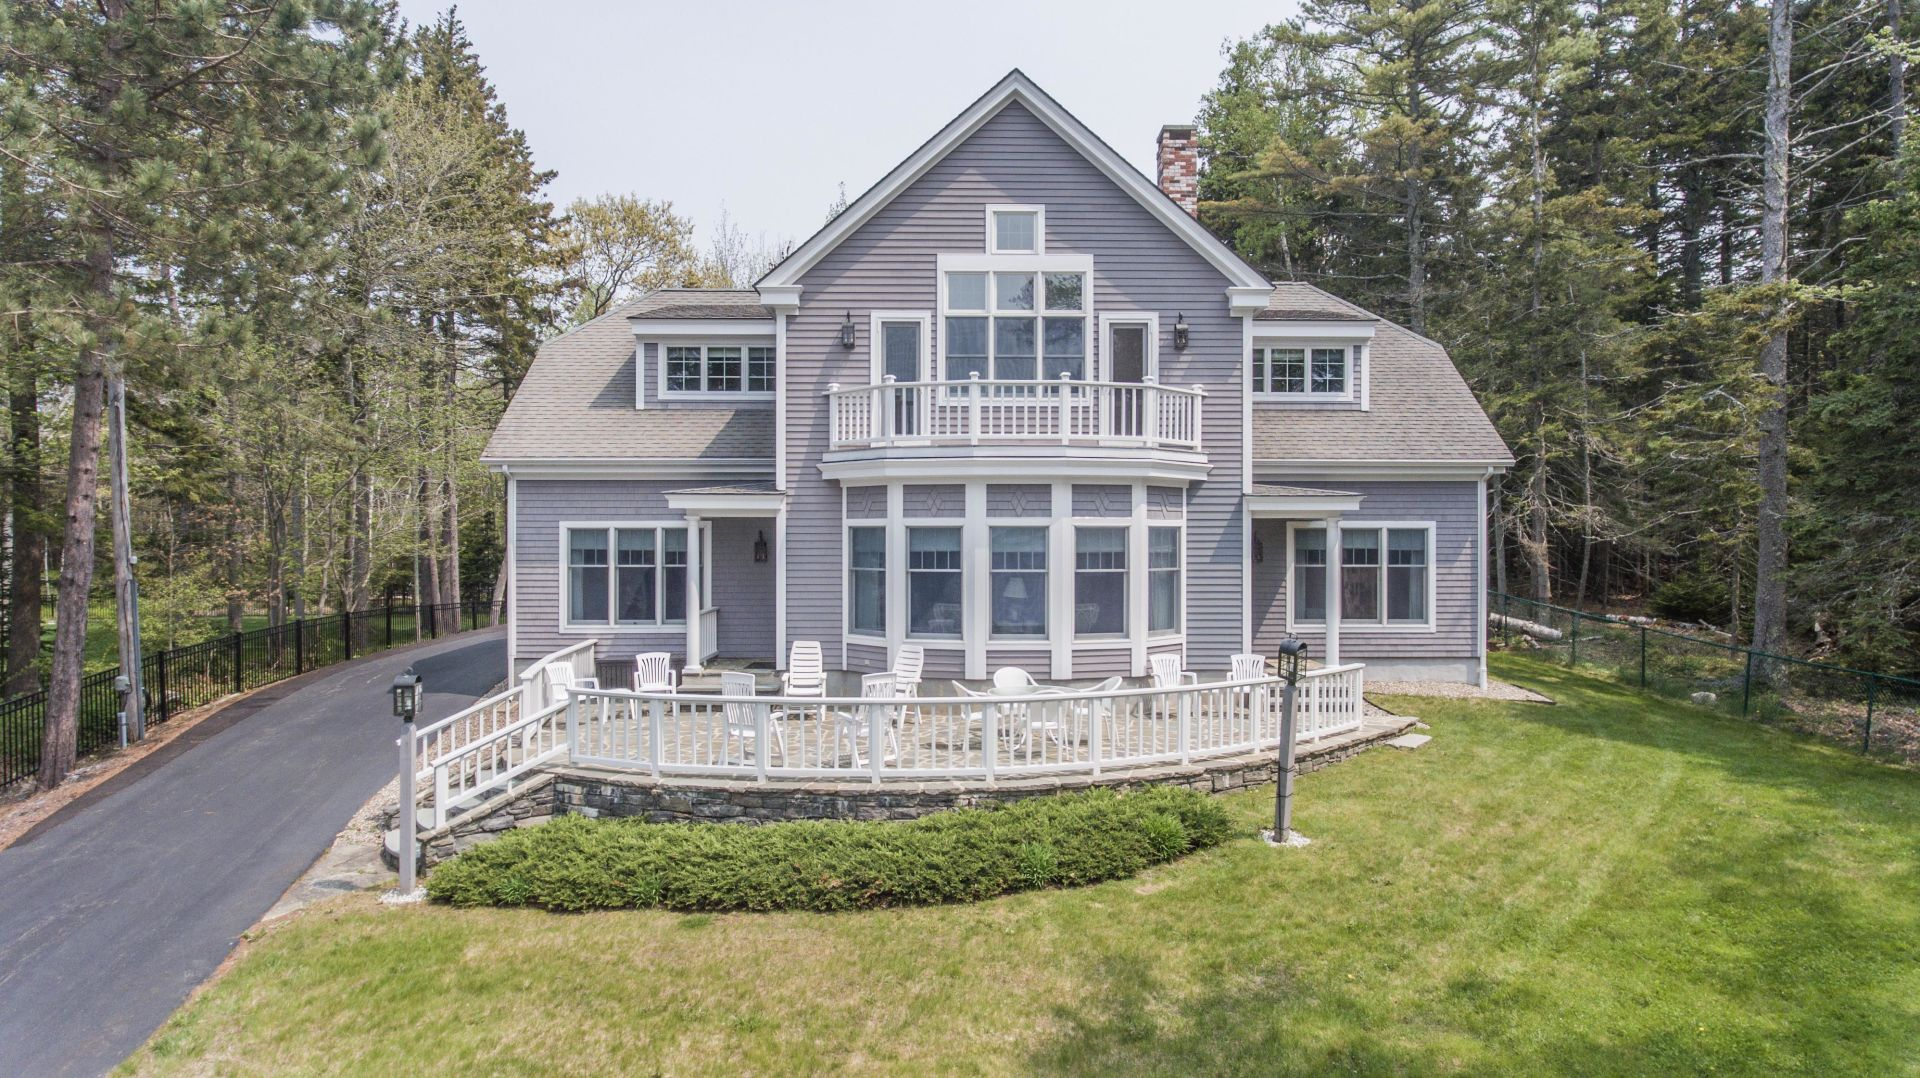 JUST LISTED – 28 Grandview Avenue, Boothbay Harbor, ME